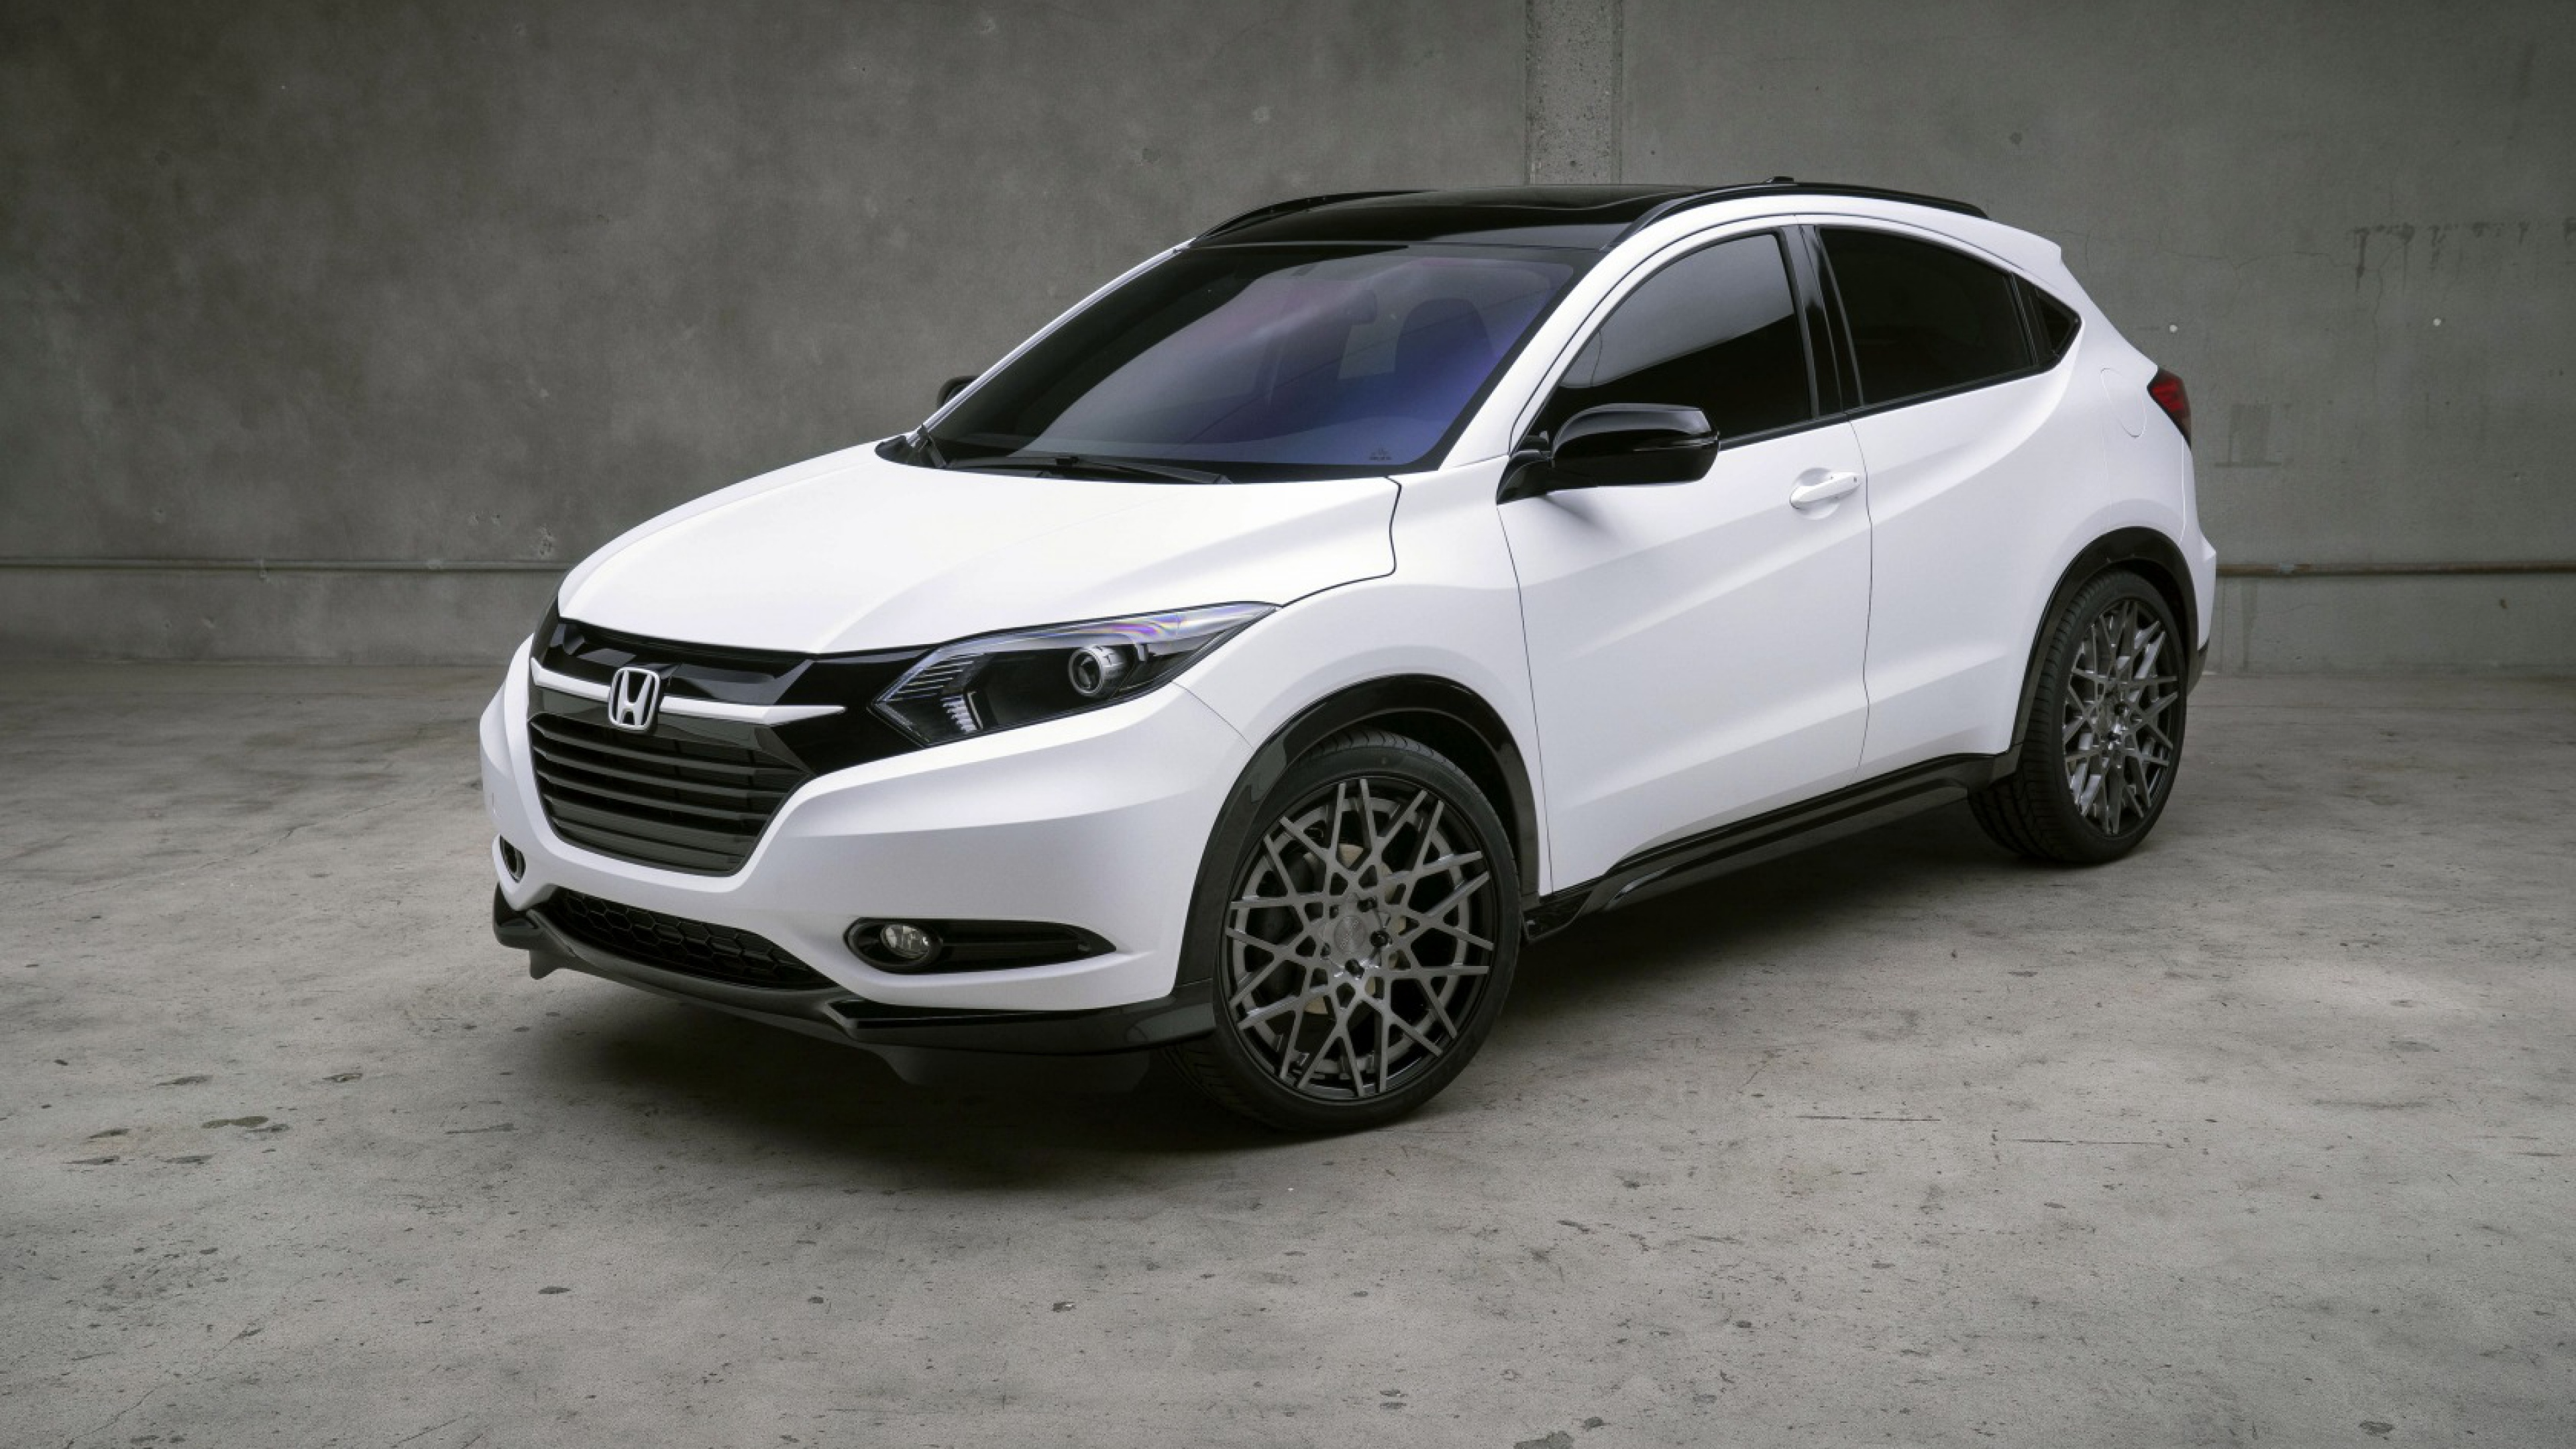 Honda Hr V Hd Wallpapers